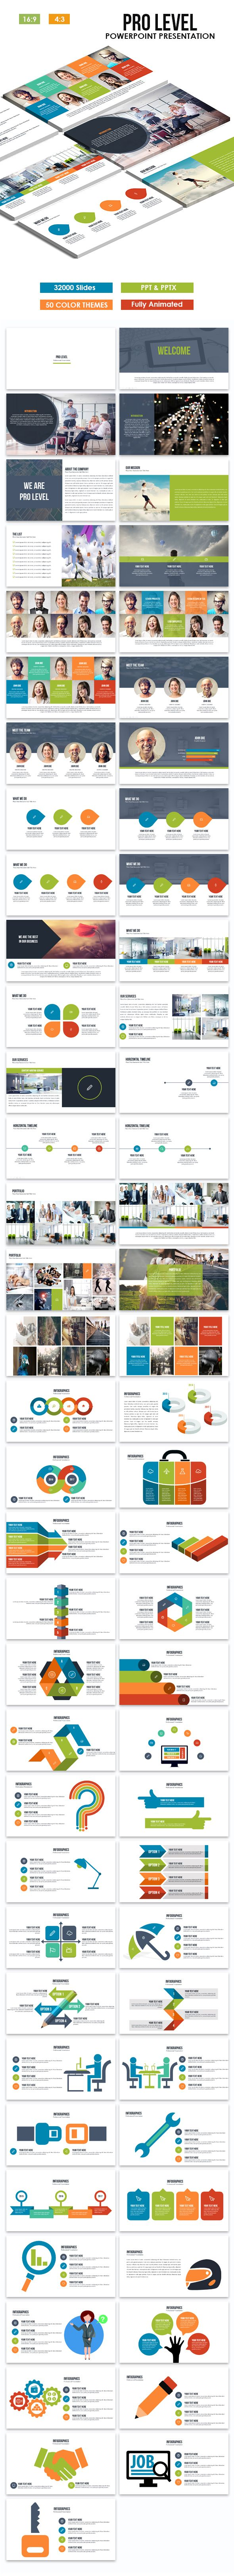 Pro level powerpoint template business powerpoint templates pro level powerpoint template business powerpoint templates alramifo Choice Image